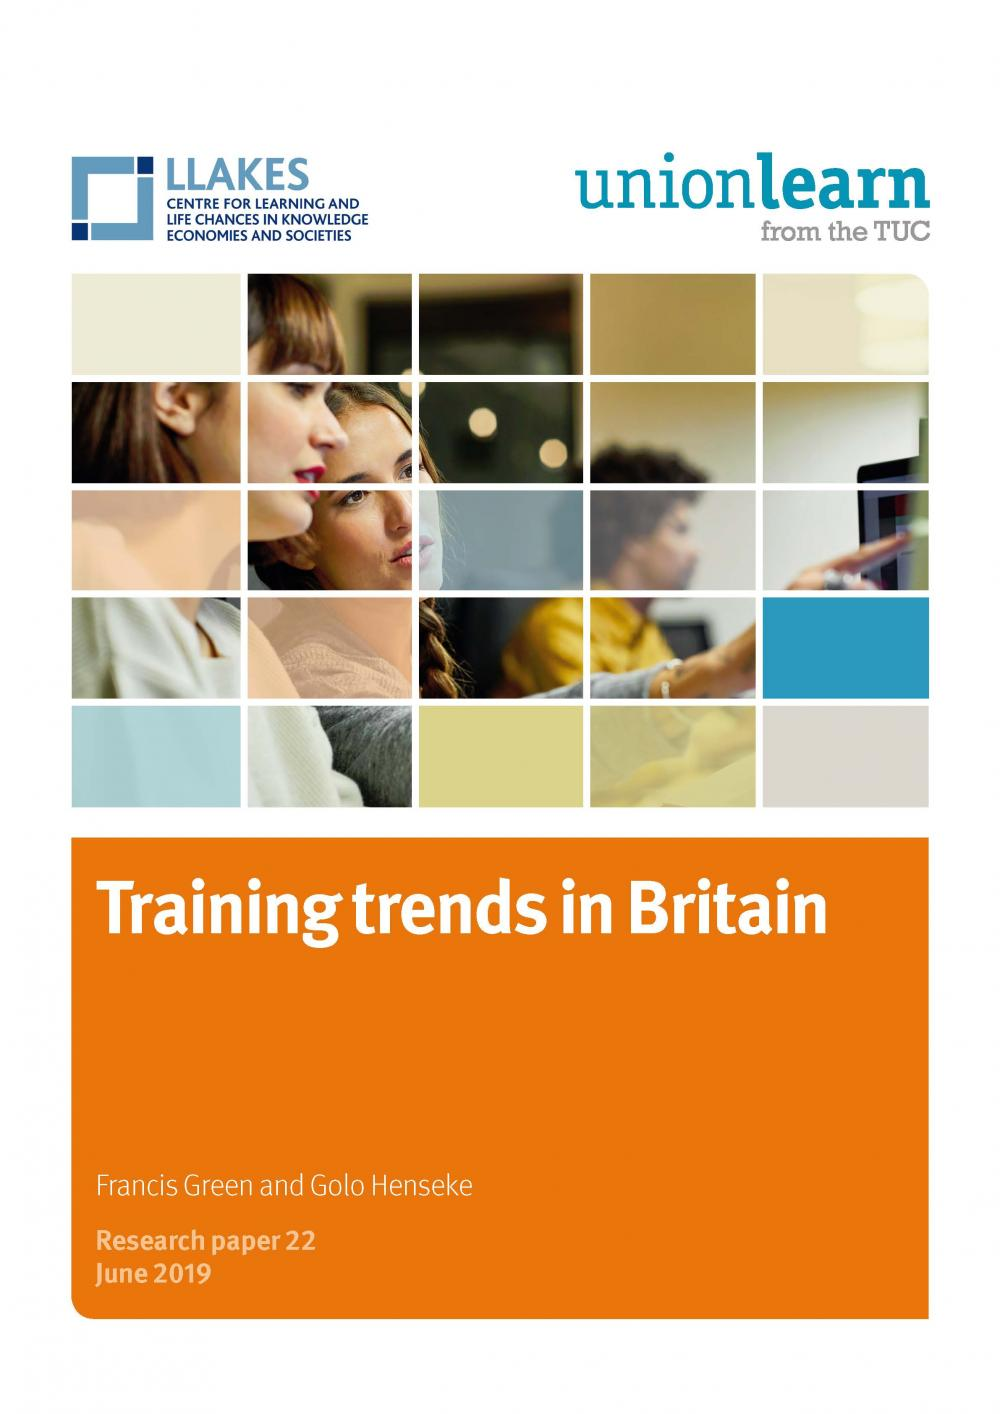 Training trends in Britain